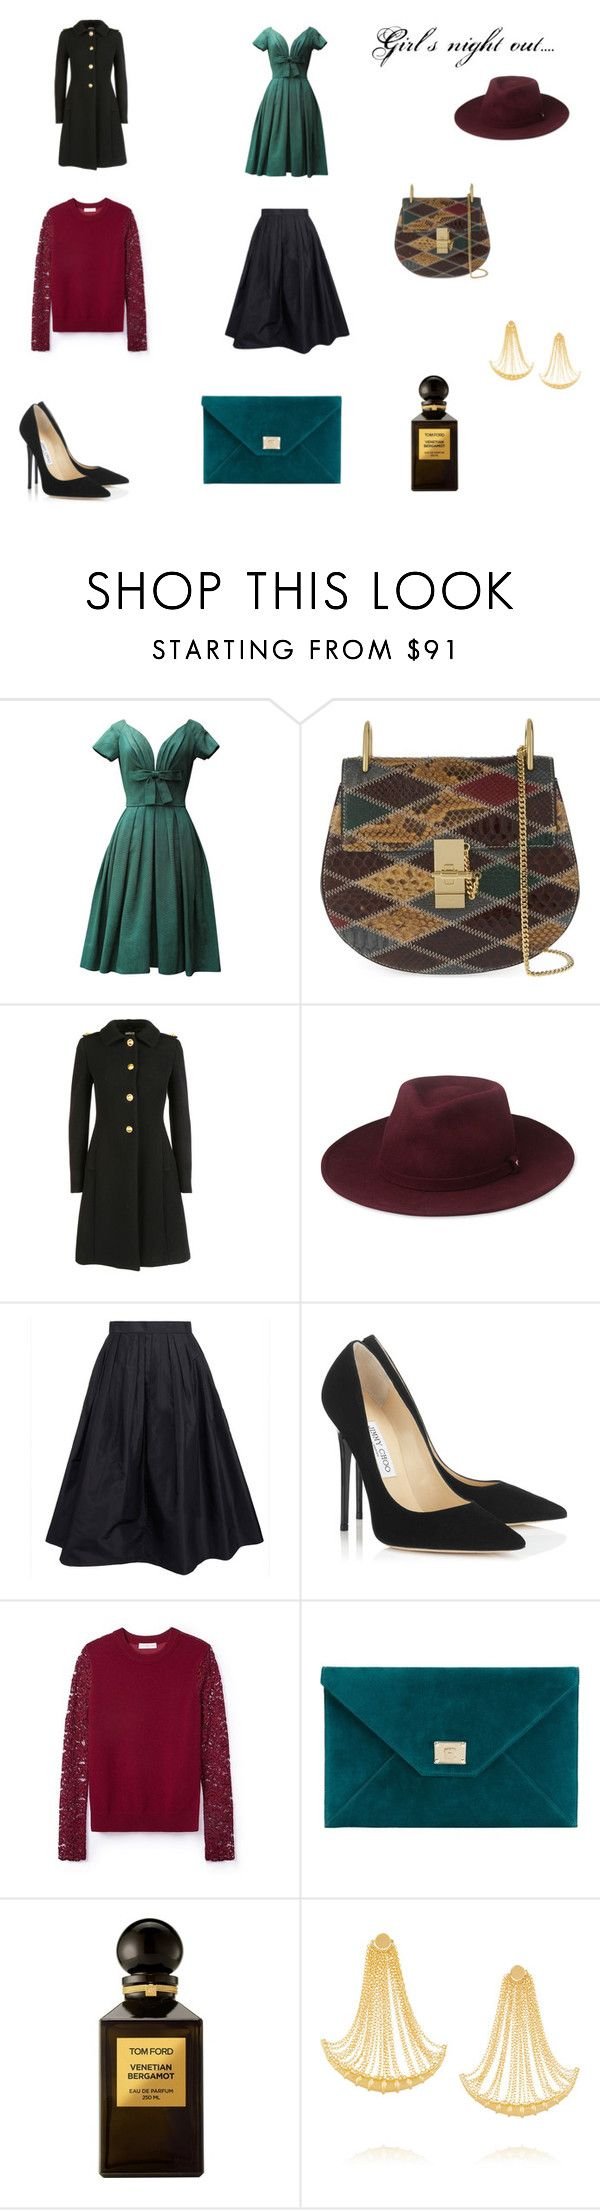 """""""Girls night out ...."""" by mousouza on Polyvore featuring Christian Dior, Chloé, Miu Miu, Whistles, Raoul, Jimmy Choo, Tory Burch, Tom Ford and Arme De L'Amour"""